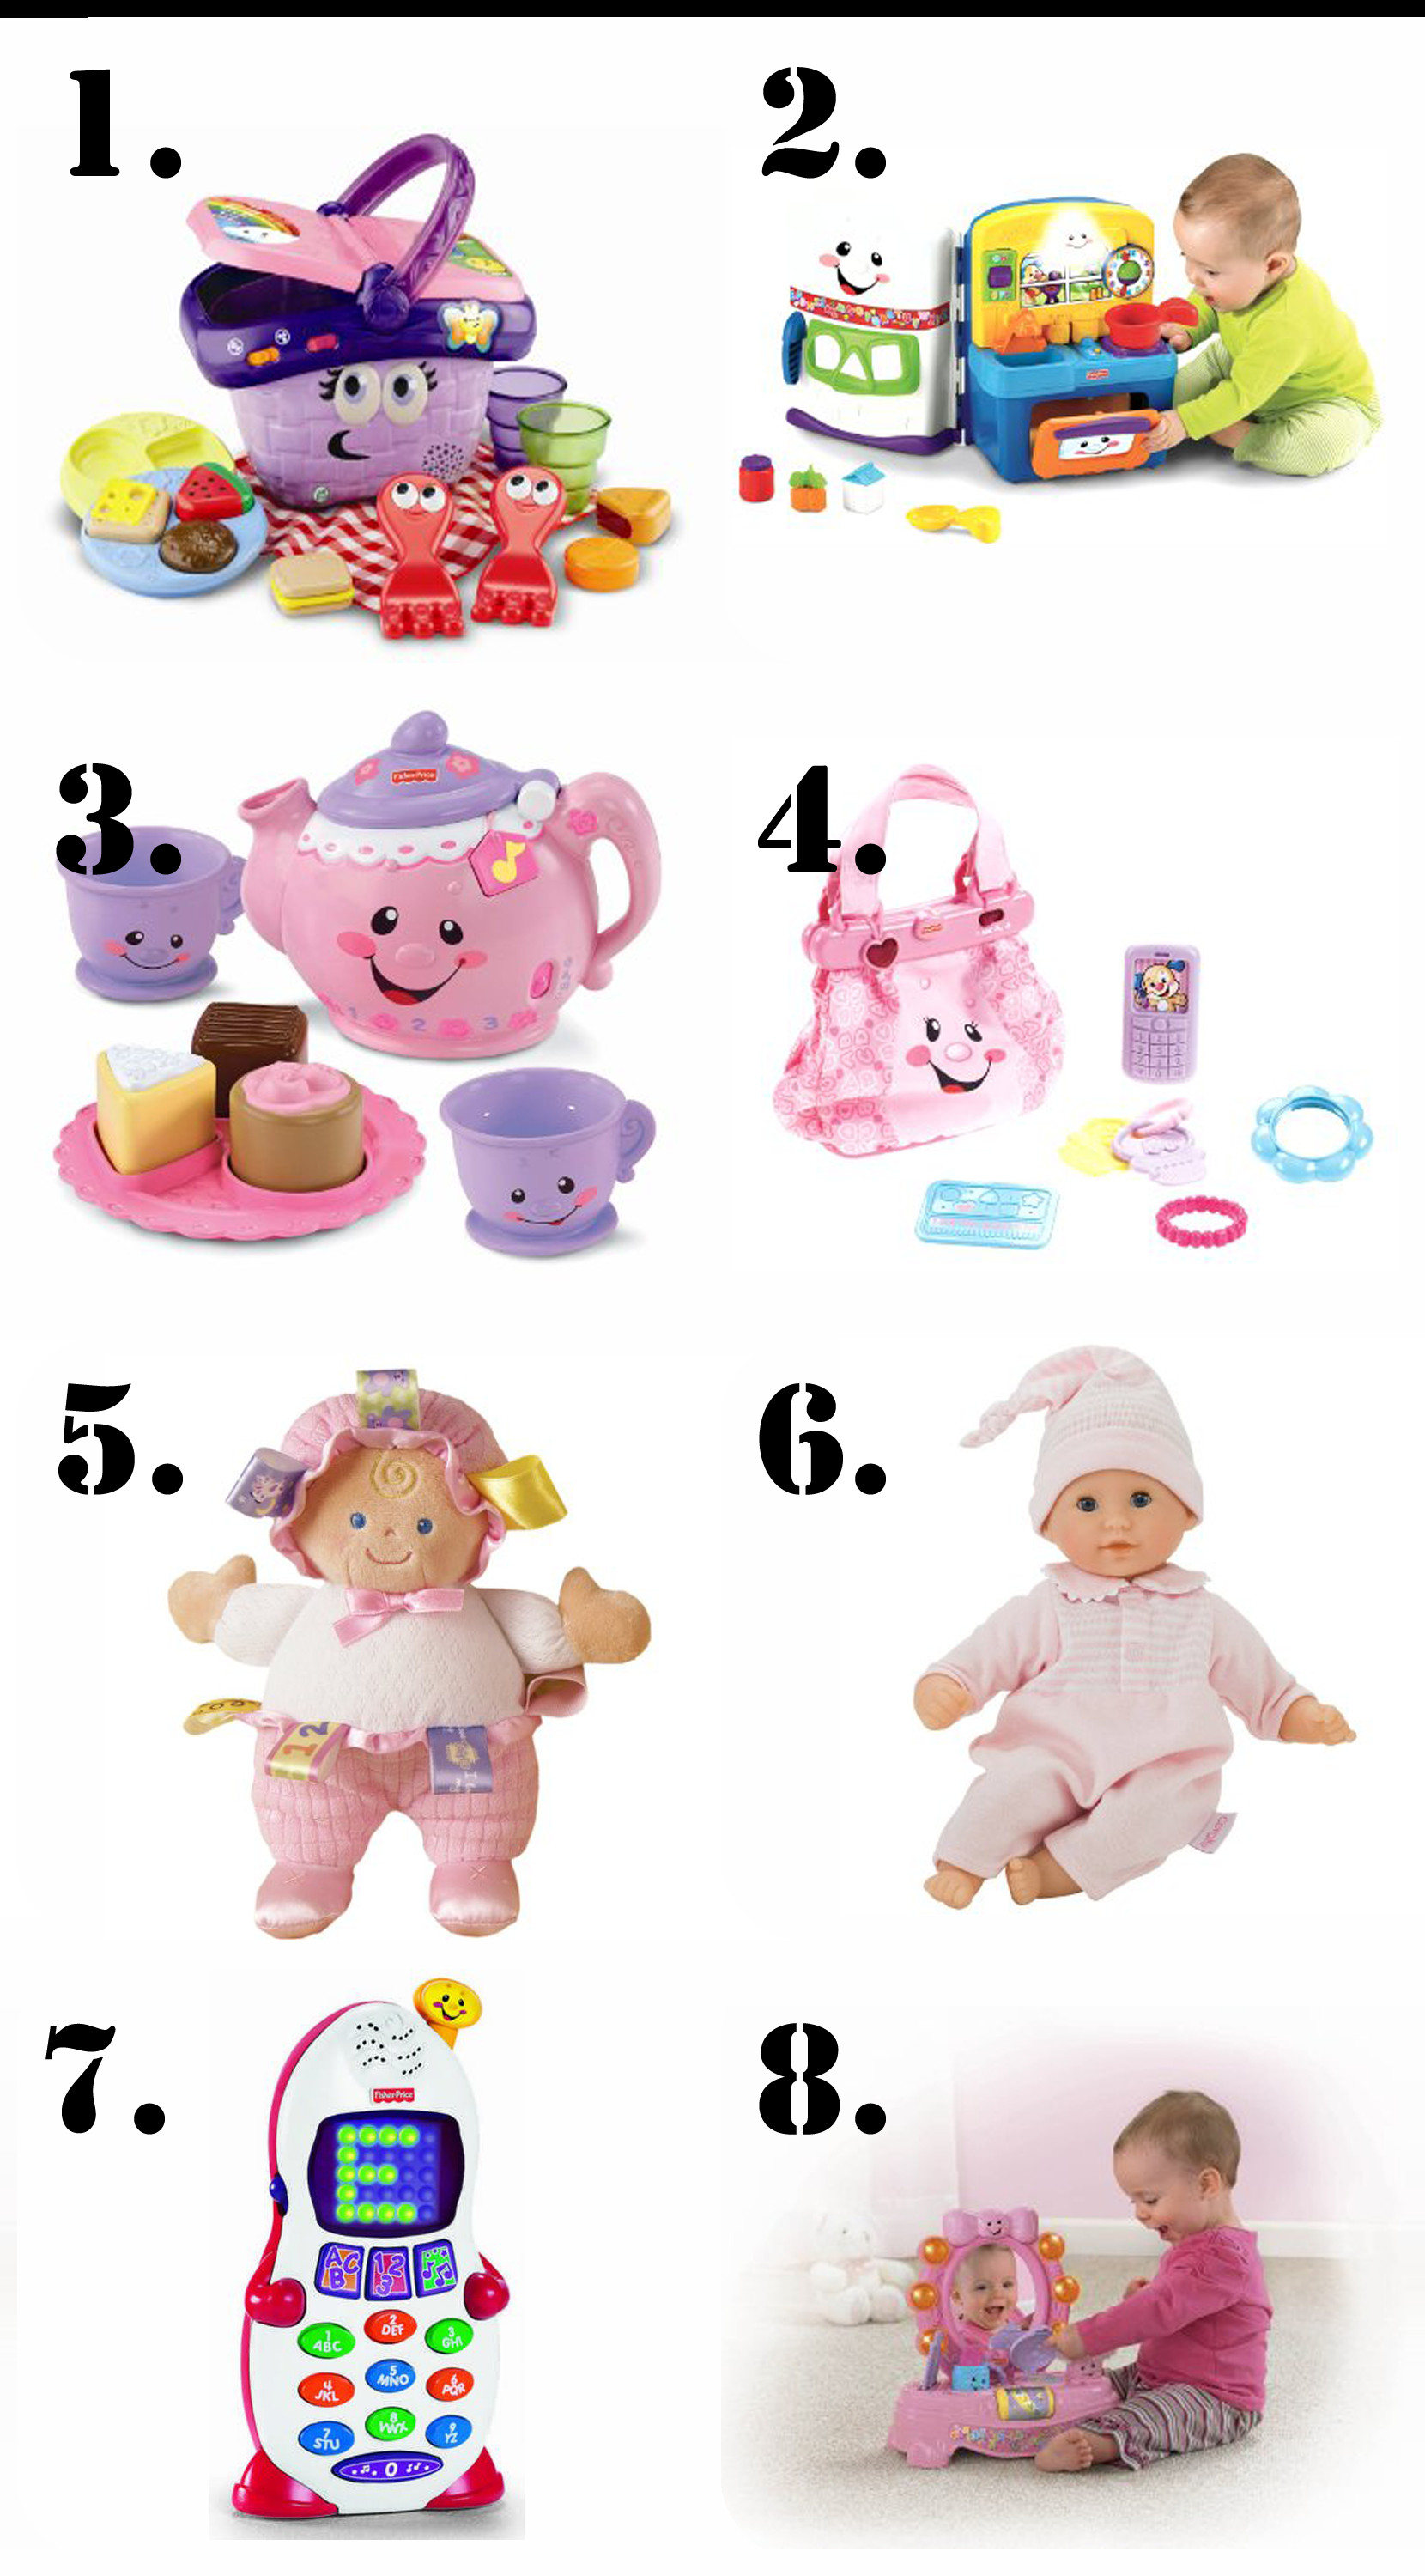 Birthday Gift Ideas For One Year Old Baby Girl  The Ultimate List of Gift Ideas for a 1 Year Old Girl